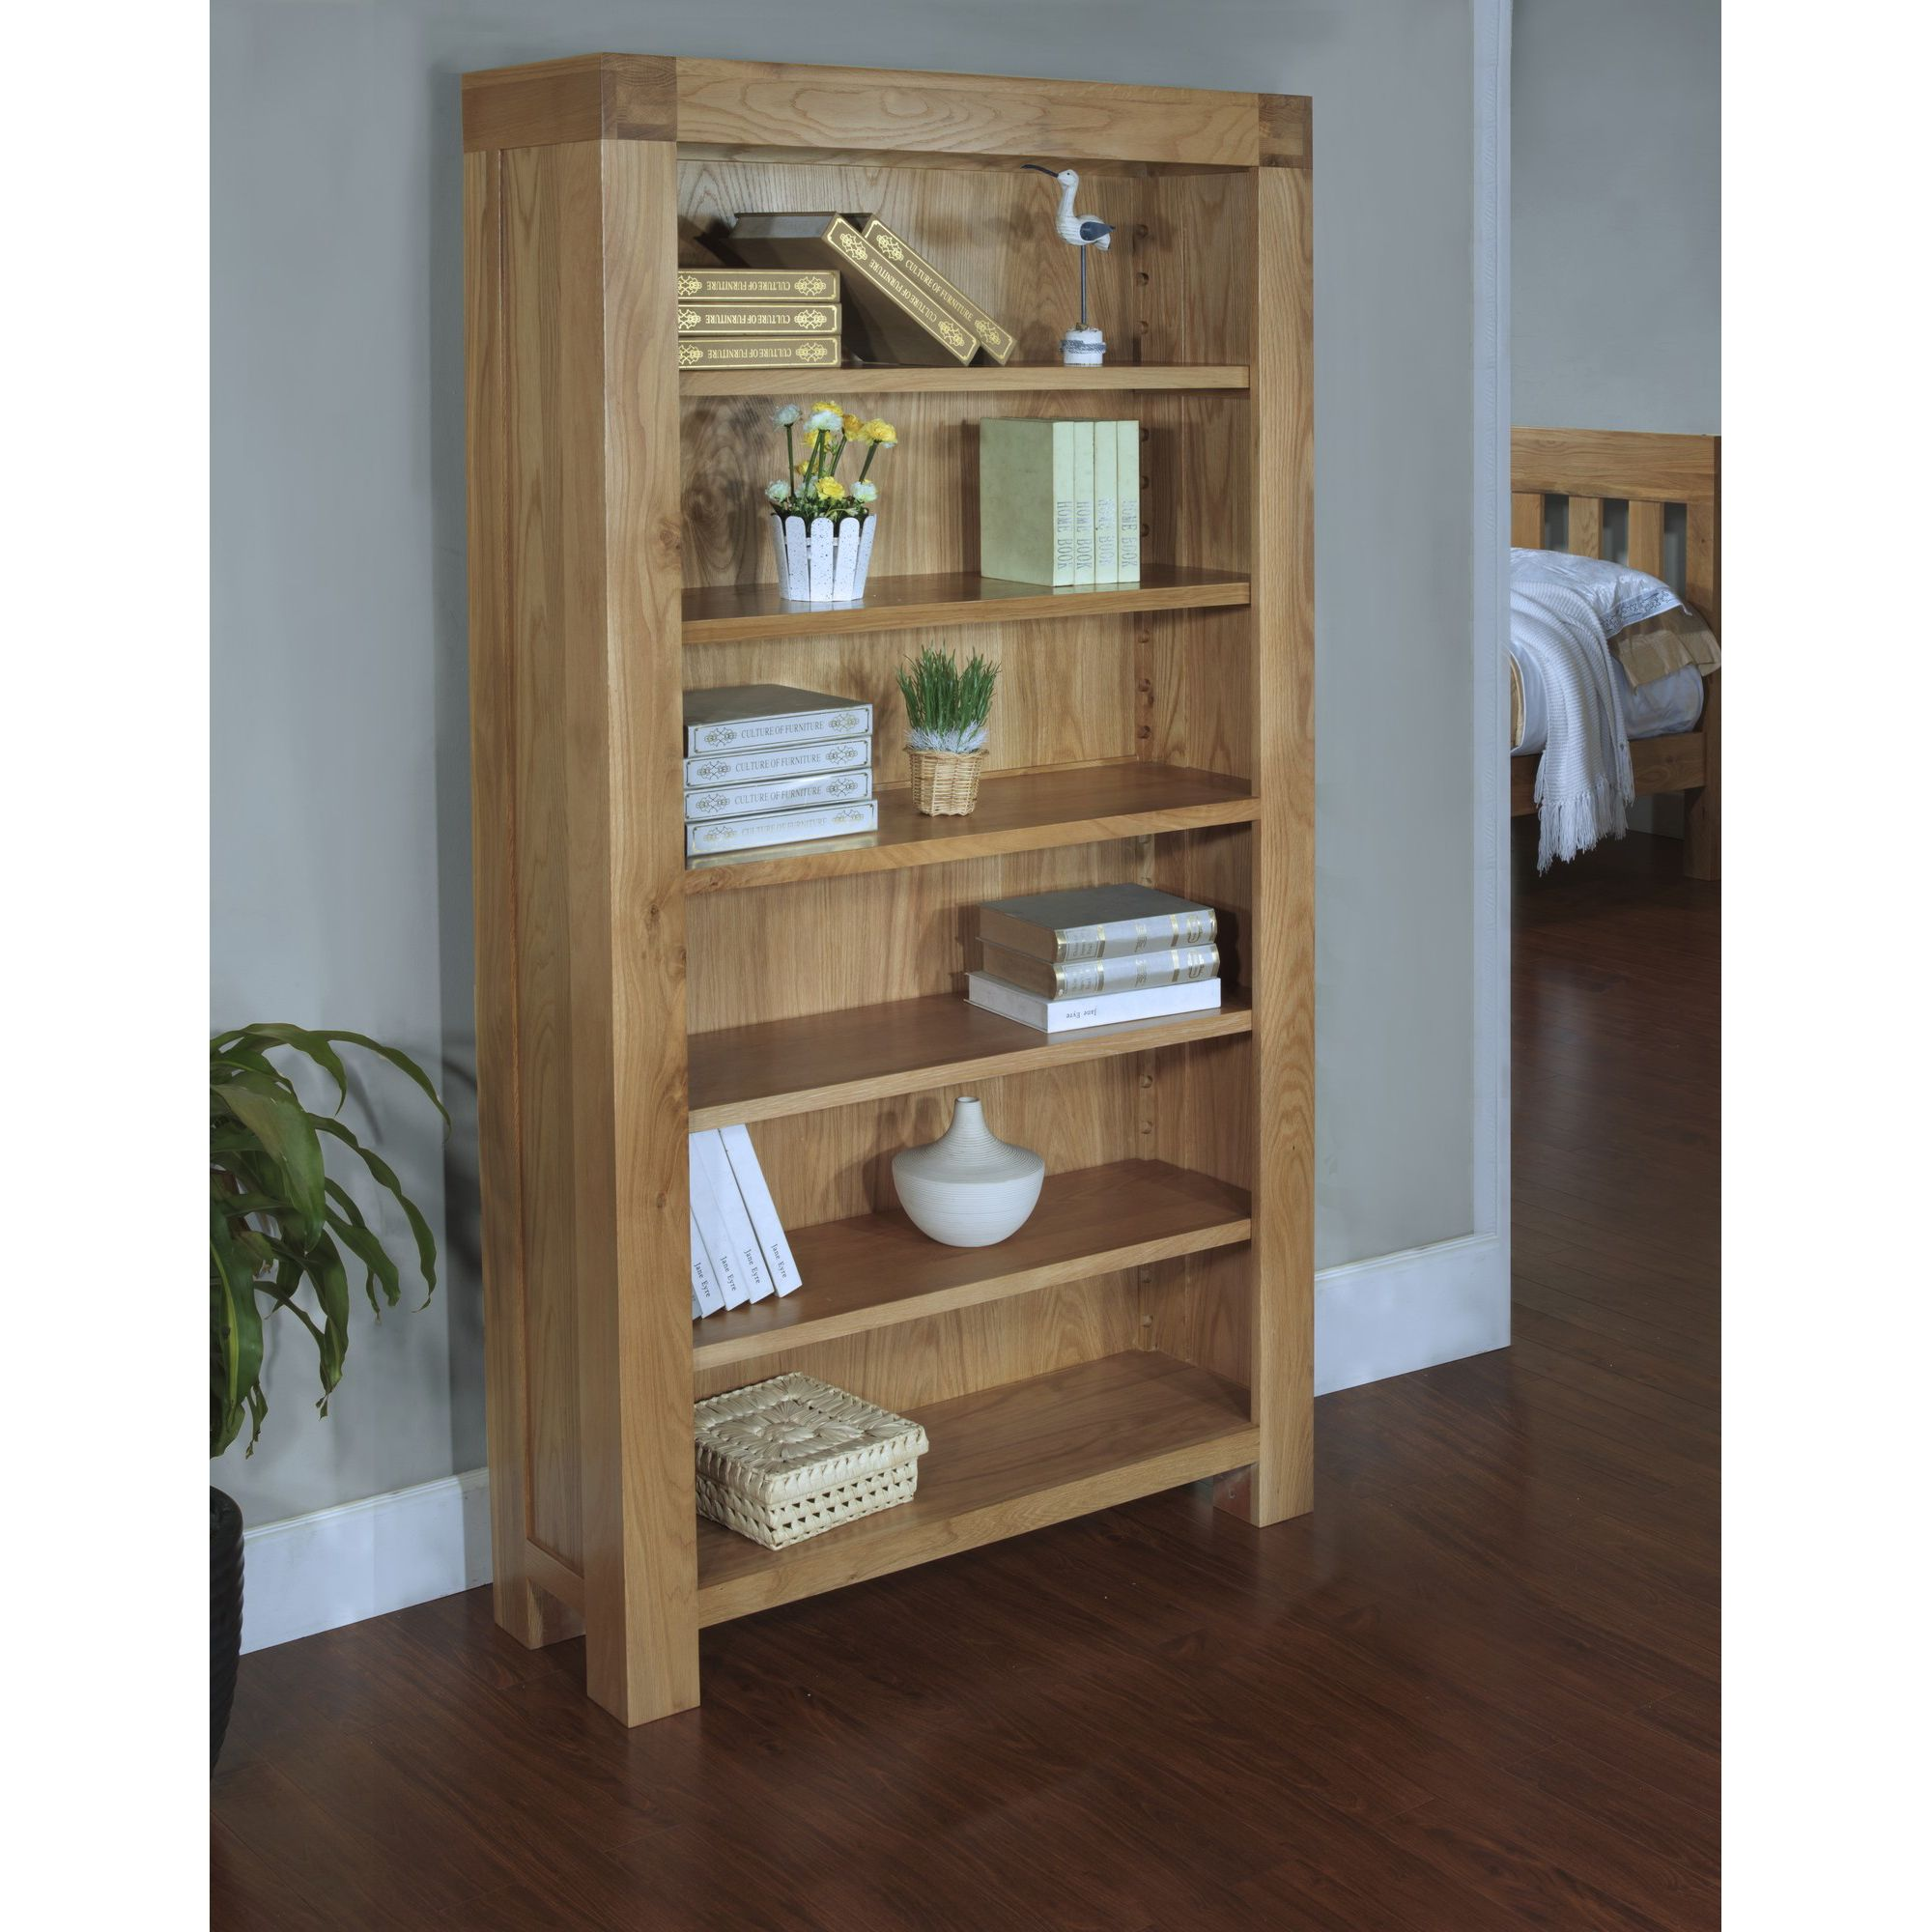 Hawkshead Rustic Oak Blonde Bookcase at Tesco Direct